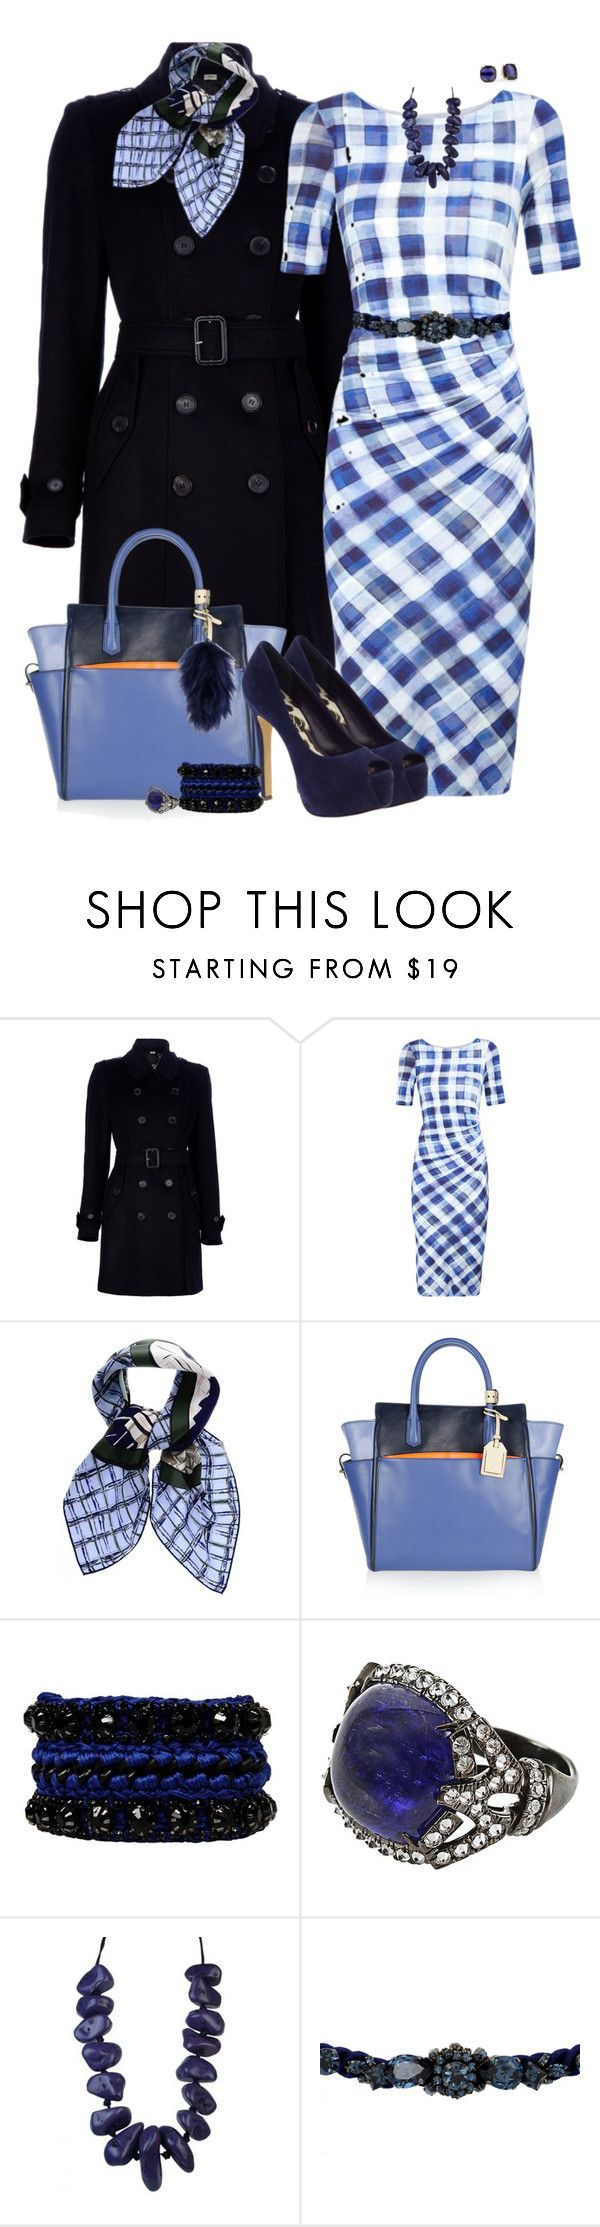 """Blue Checked Dress"" by lmm2nd ❤ liked on Polyvore featuring Burberry, Paul Smith, Christian Dior, Reed Krakoff, Jessica Simpson, Venessa Arizaga, Arunashi, Kate Spade, Shourouk and Deadly Ponies"